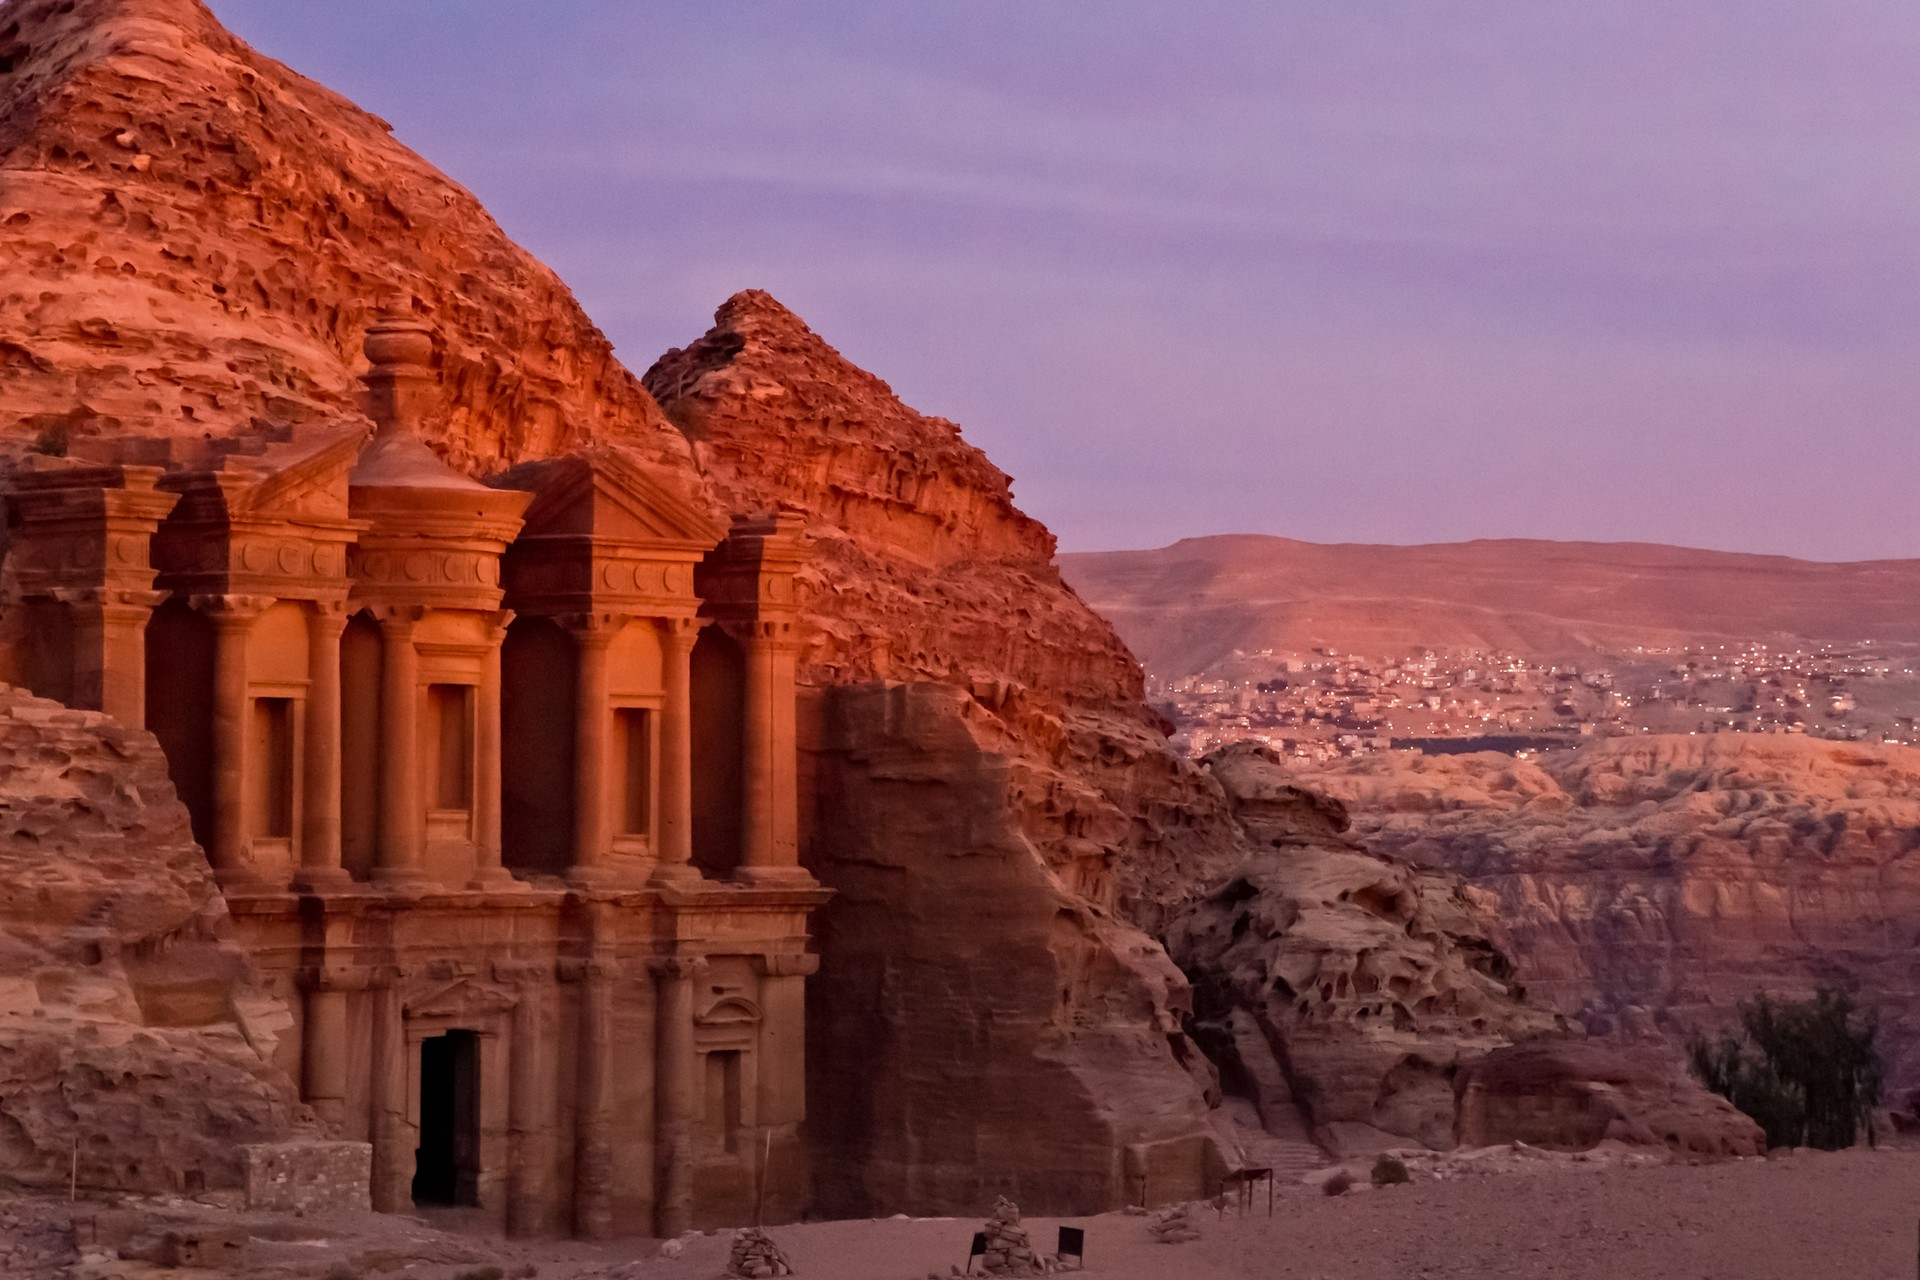 The Monastery at Petra - sunset